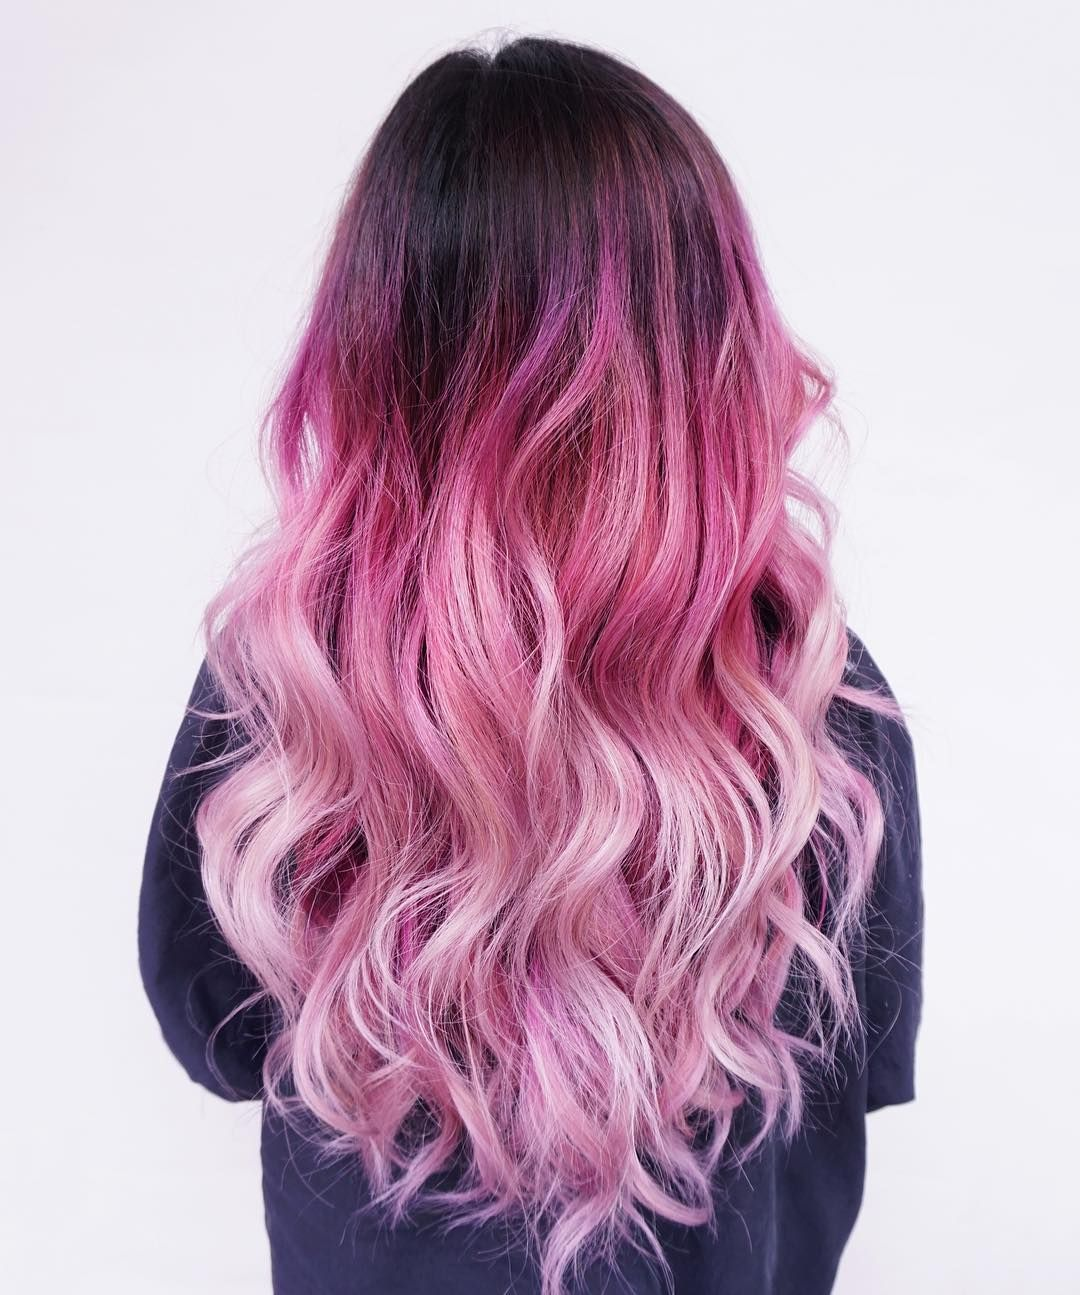 Hair ombre pink